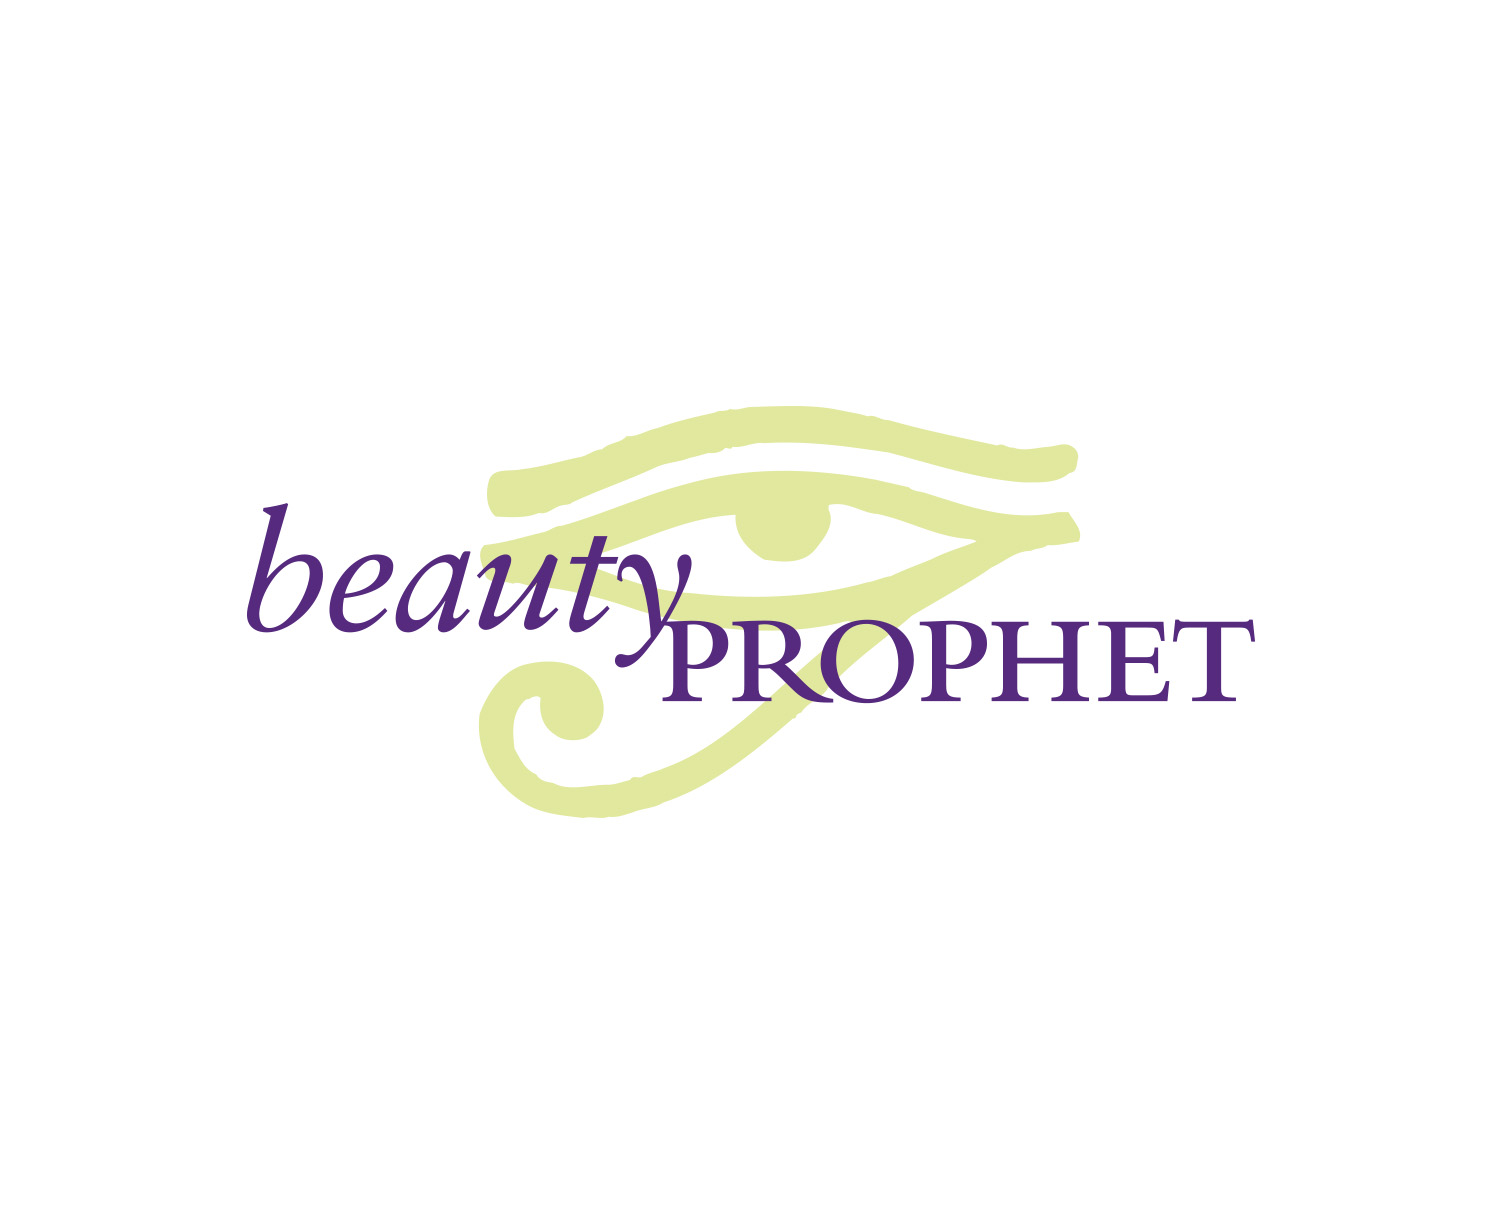 cosmetic/beauty consulting company